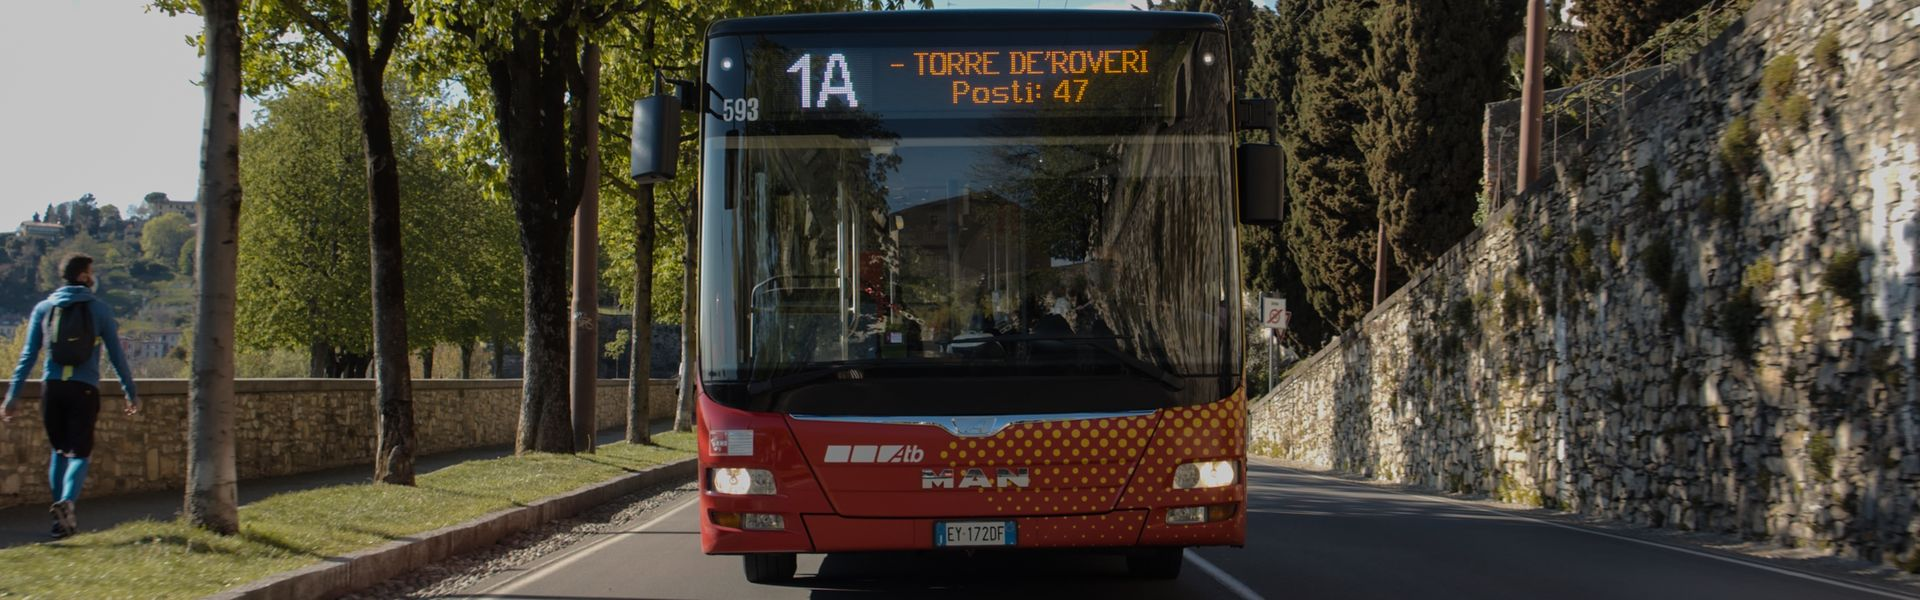 Conduent Transportation Implements Innovative Passenger Counting System on Buses and Trams in Italy